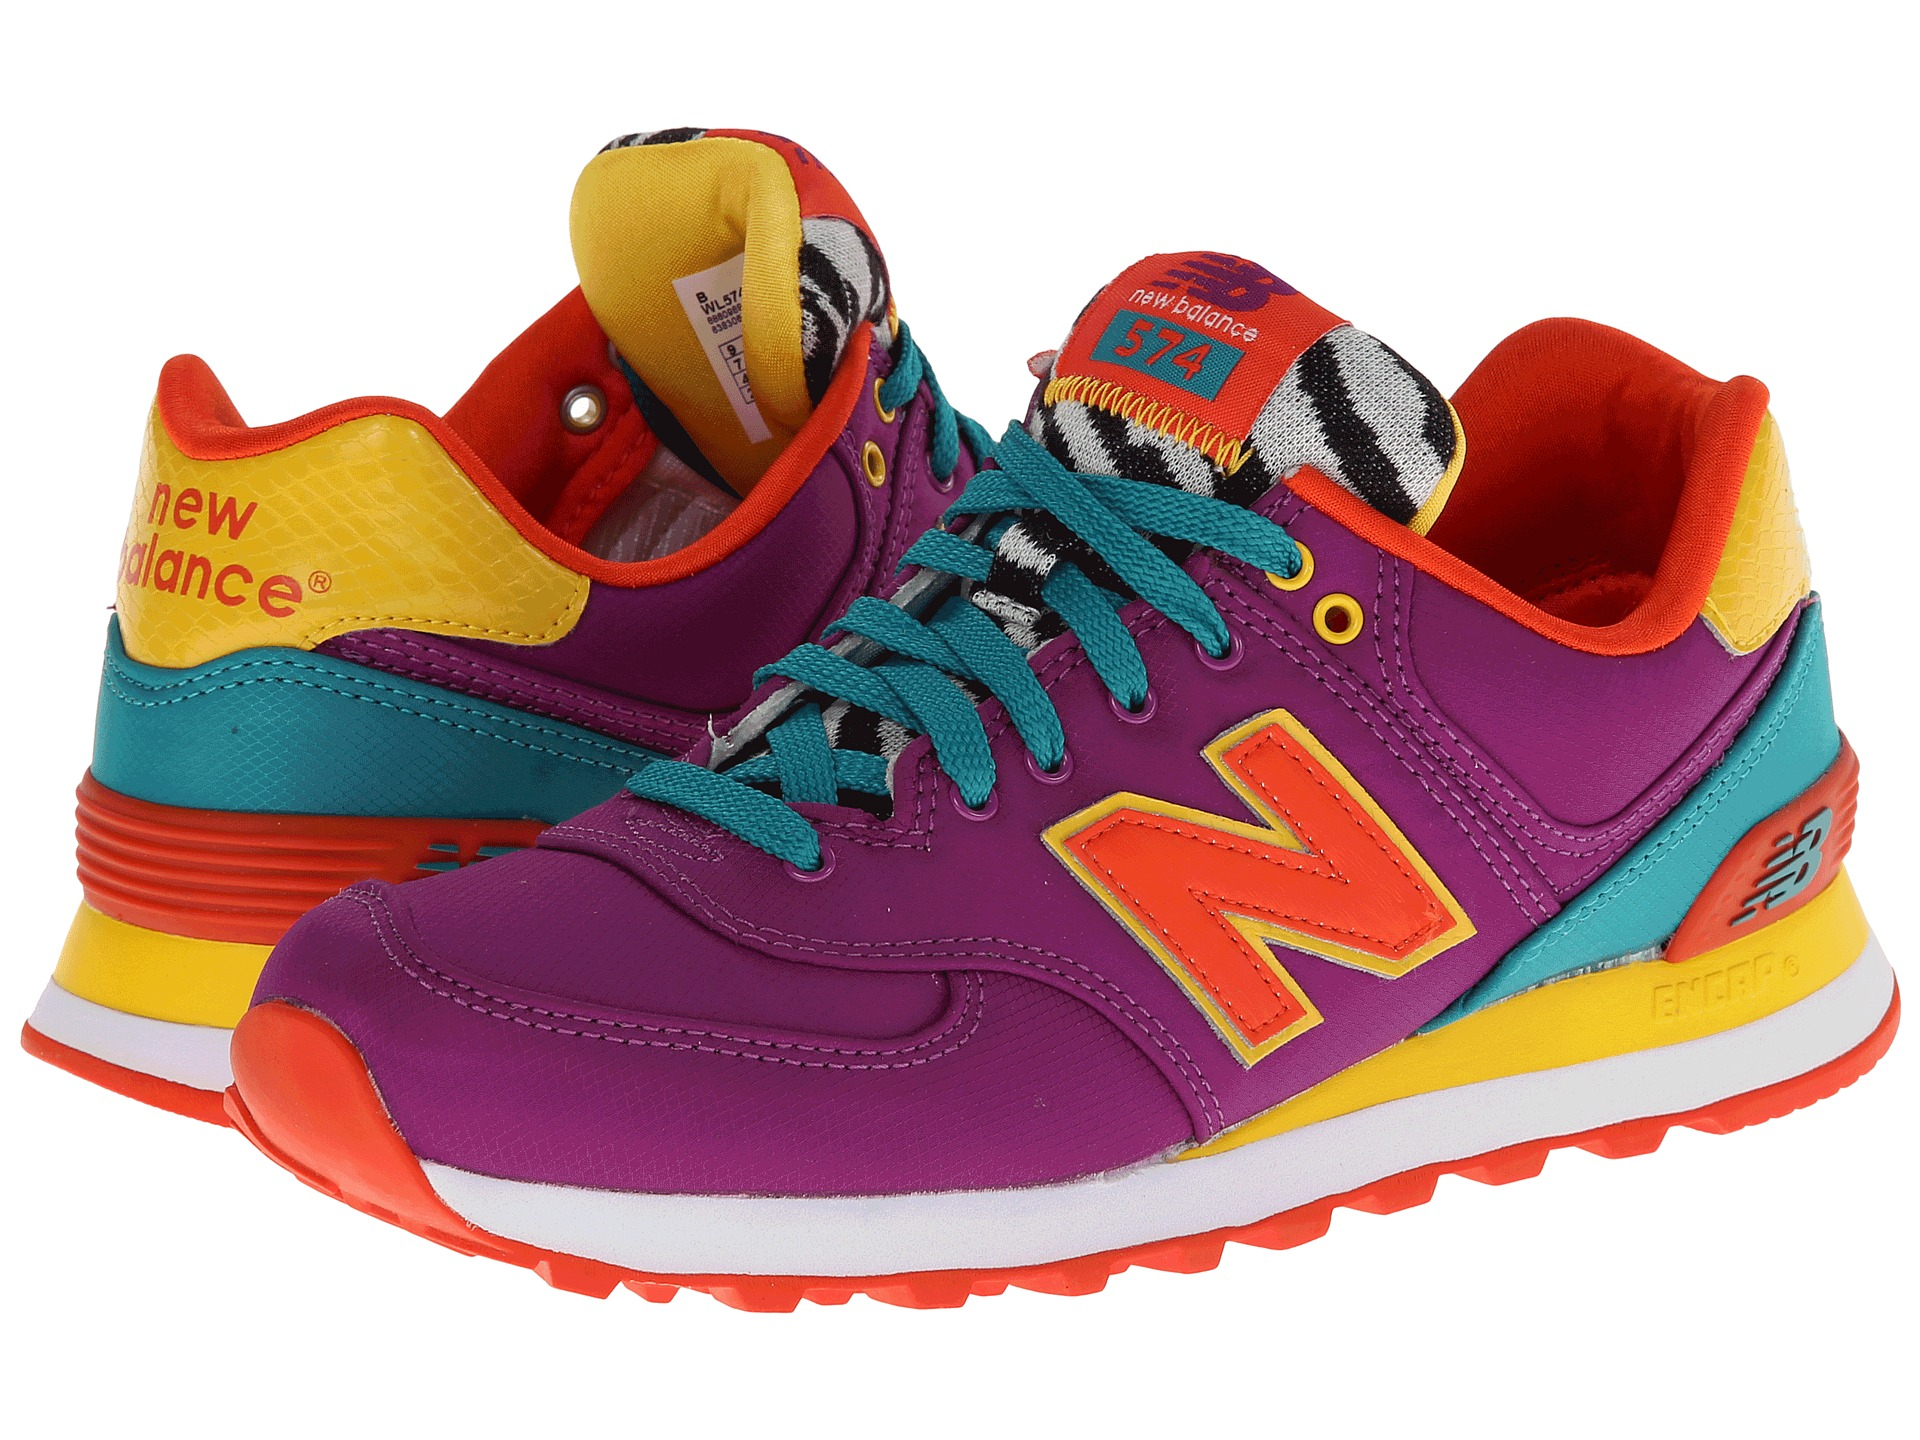 Movimiento viceversa Eso  New Balance Wl574 Pop Safari in Purple '14 (Purple) - Lyst